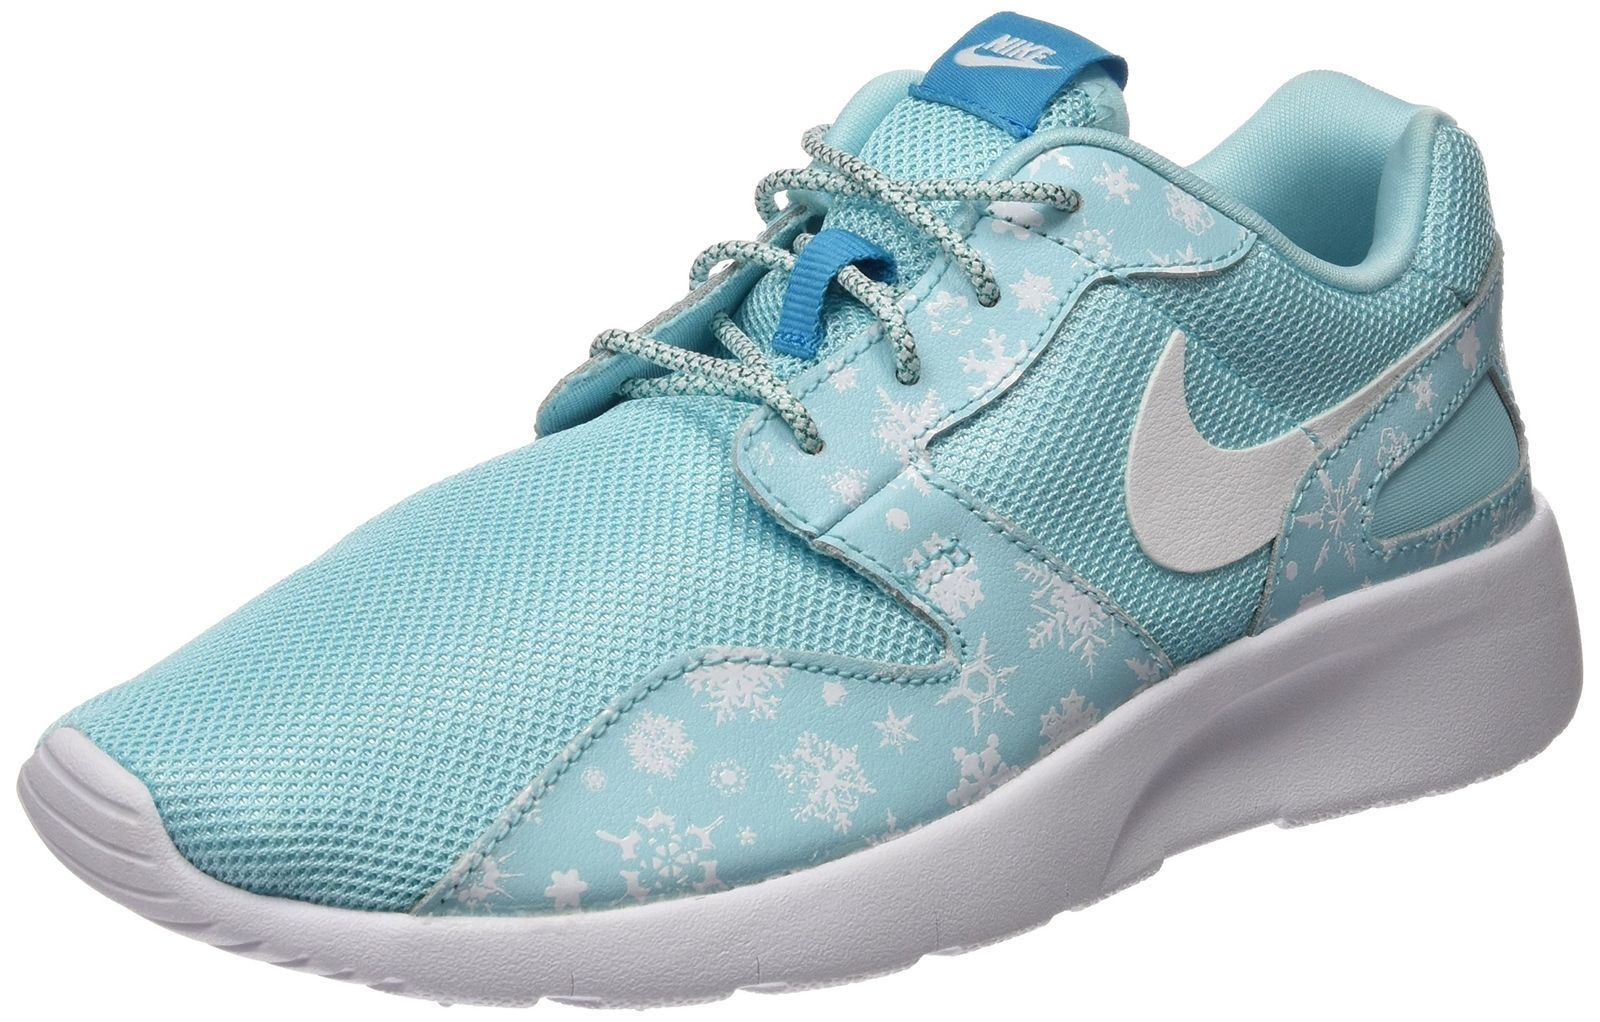 Nike Girls Kaishi Print Running Shoes (4.5Y, and 50 similar items. S l1600